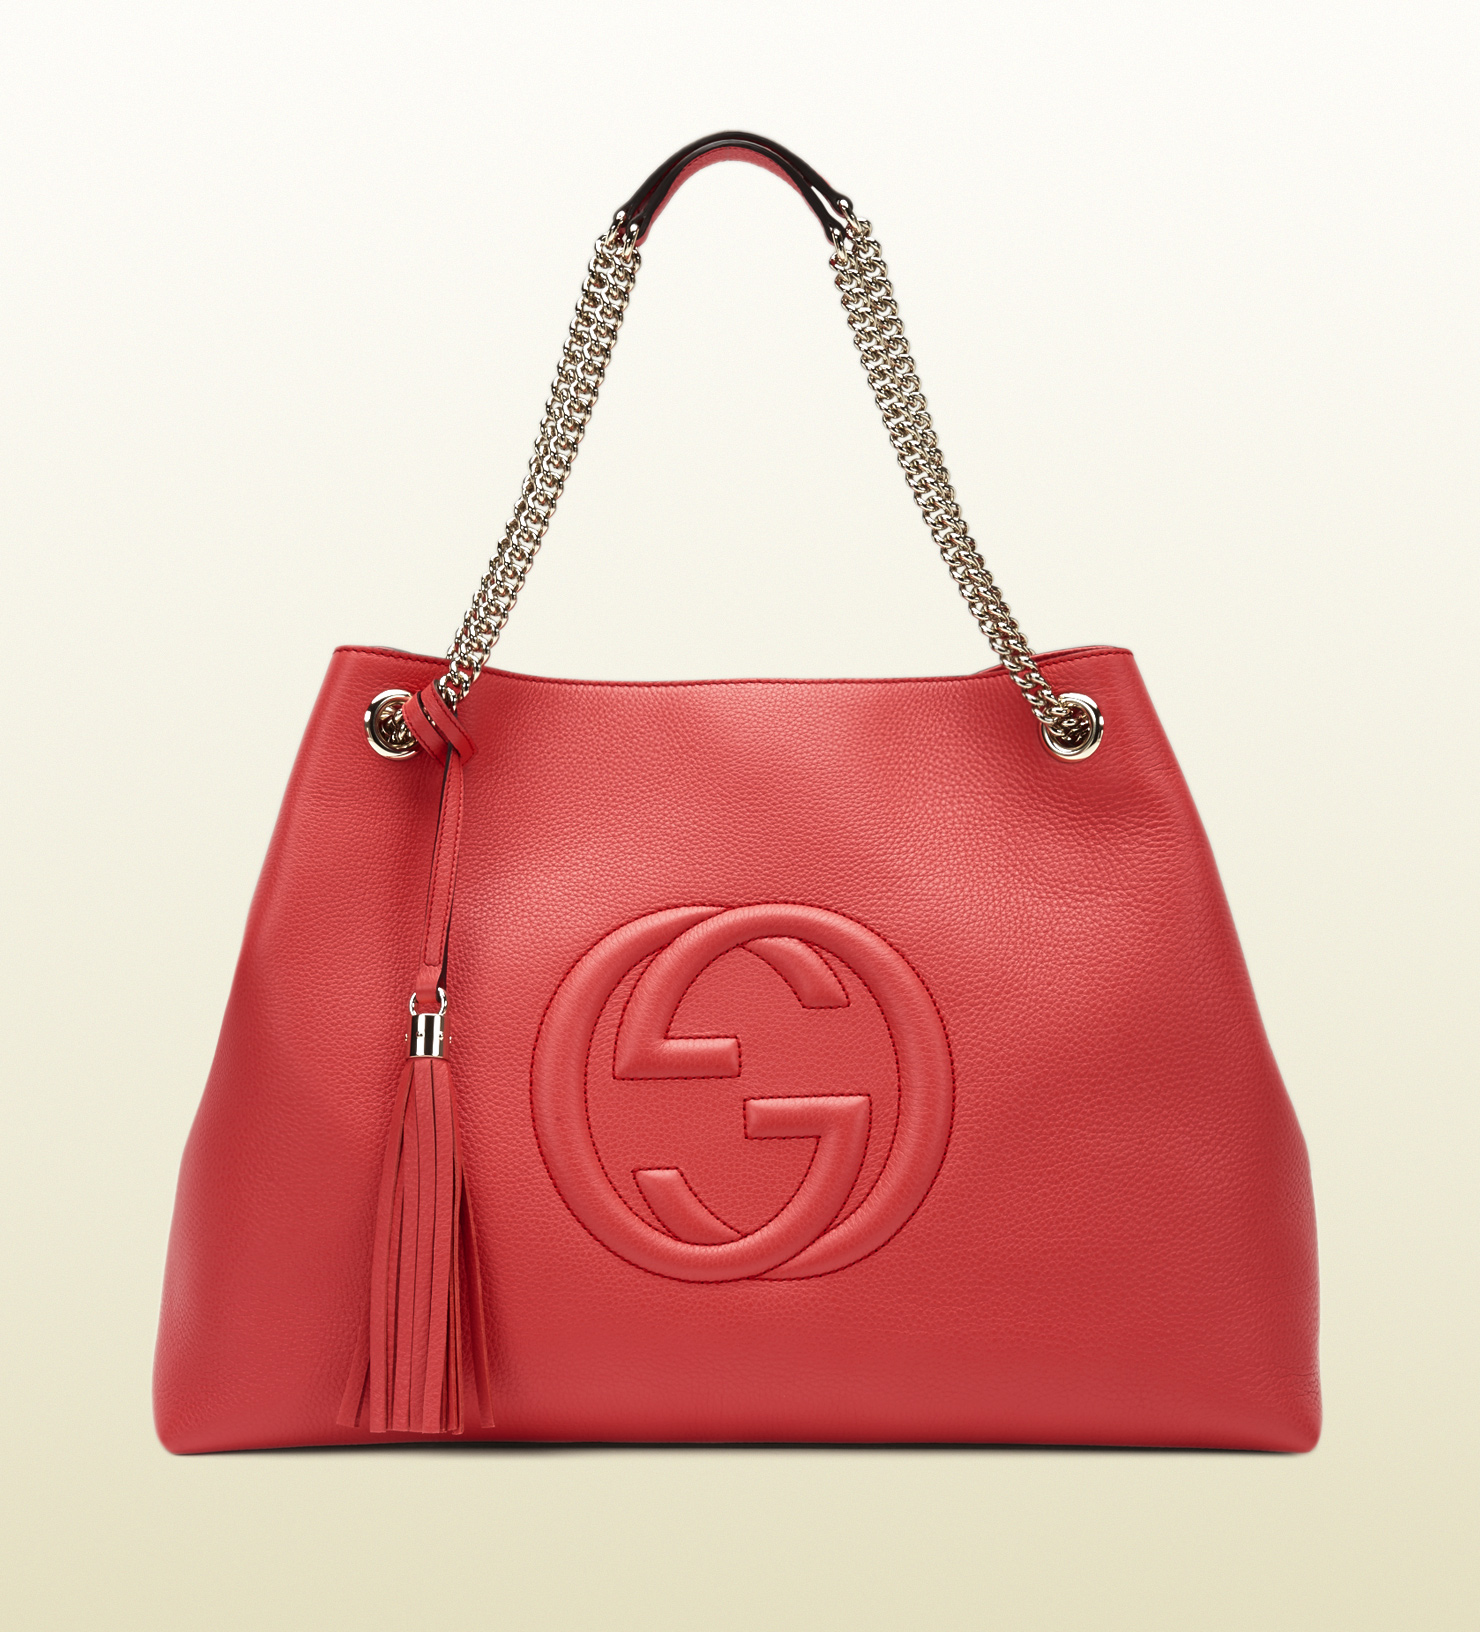 50bf2f96986 Lyst - Gucci Soho Begonia Pink Leather Shoulder Bag in Red